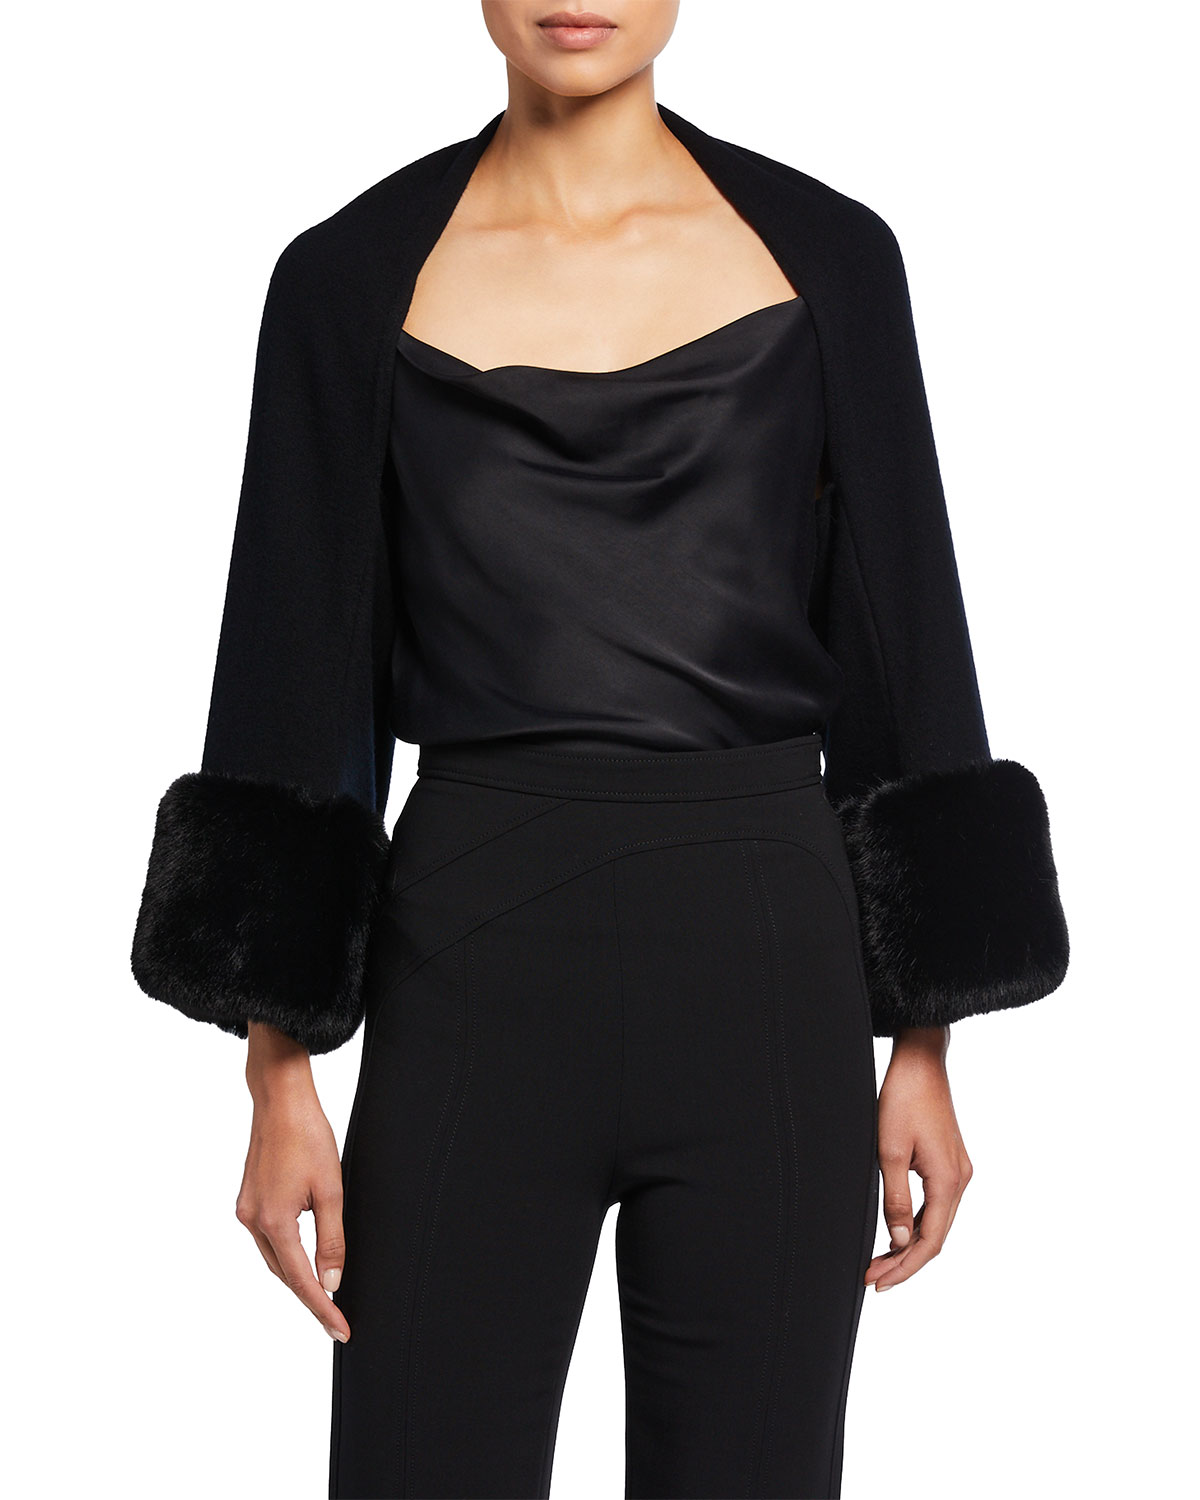 Belle Fare WOOL/CASHMERE SHRUG WITH OVERSIZED FAUX FUR CUFFS